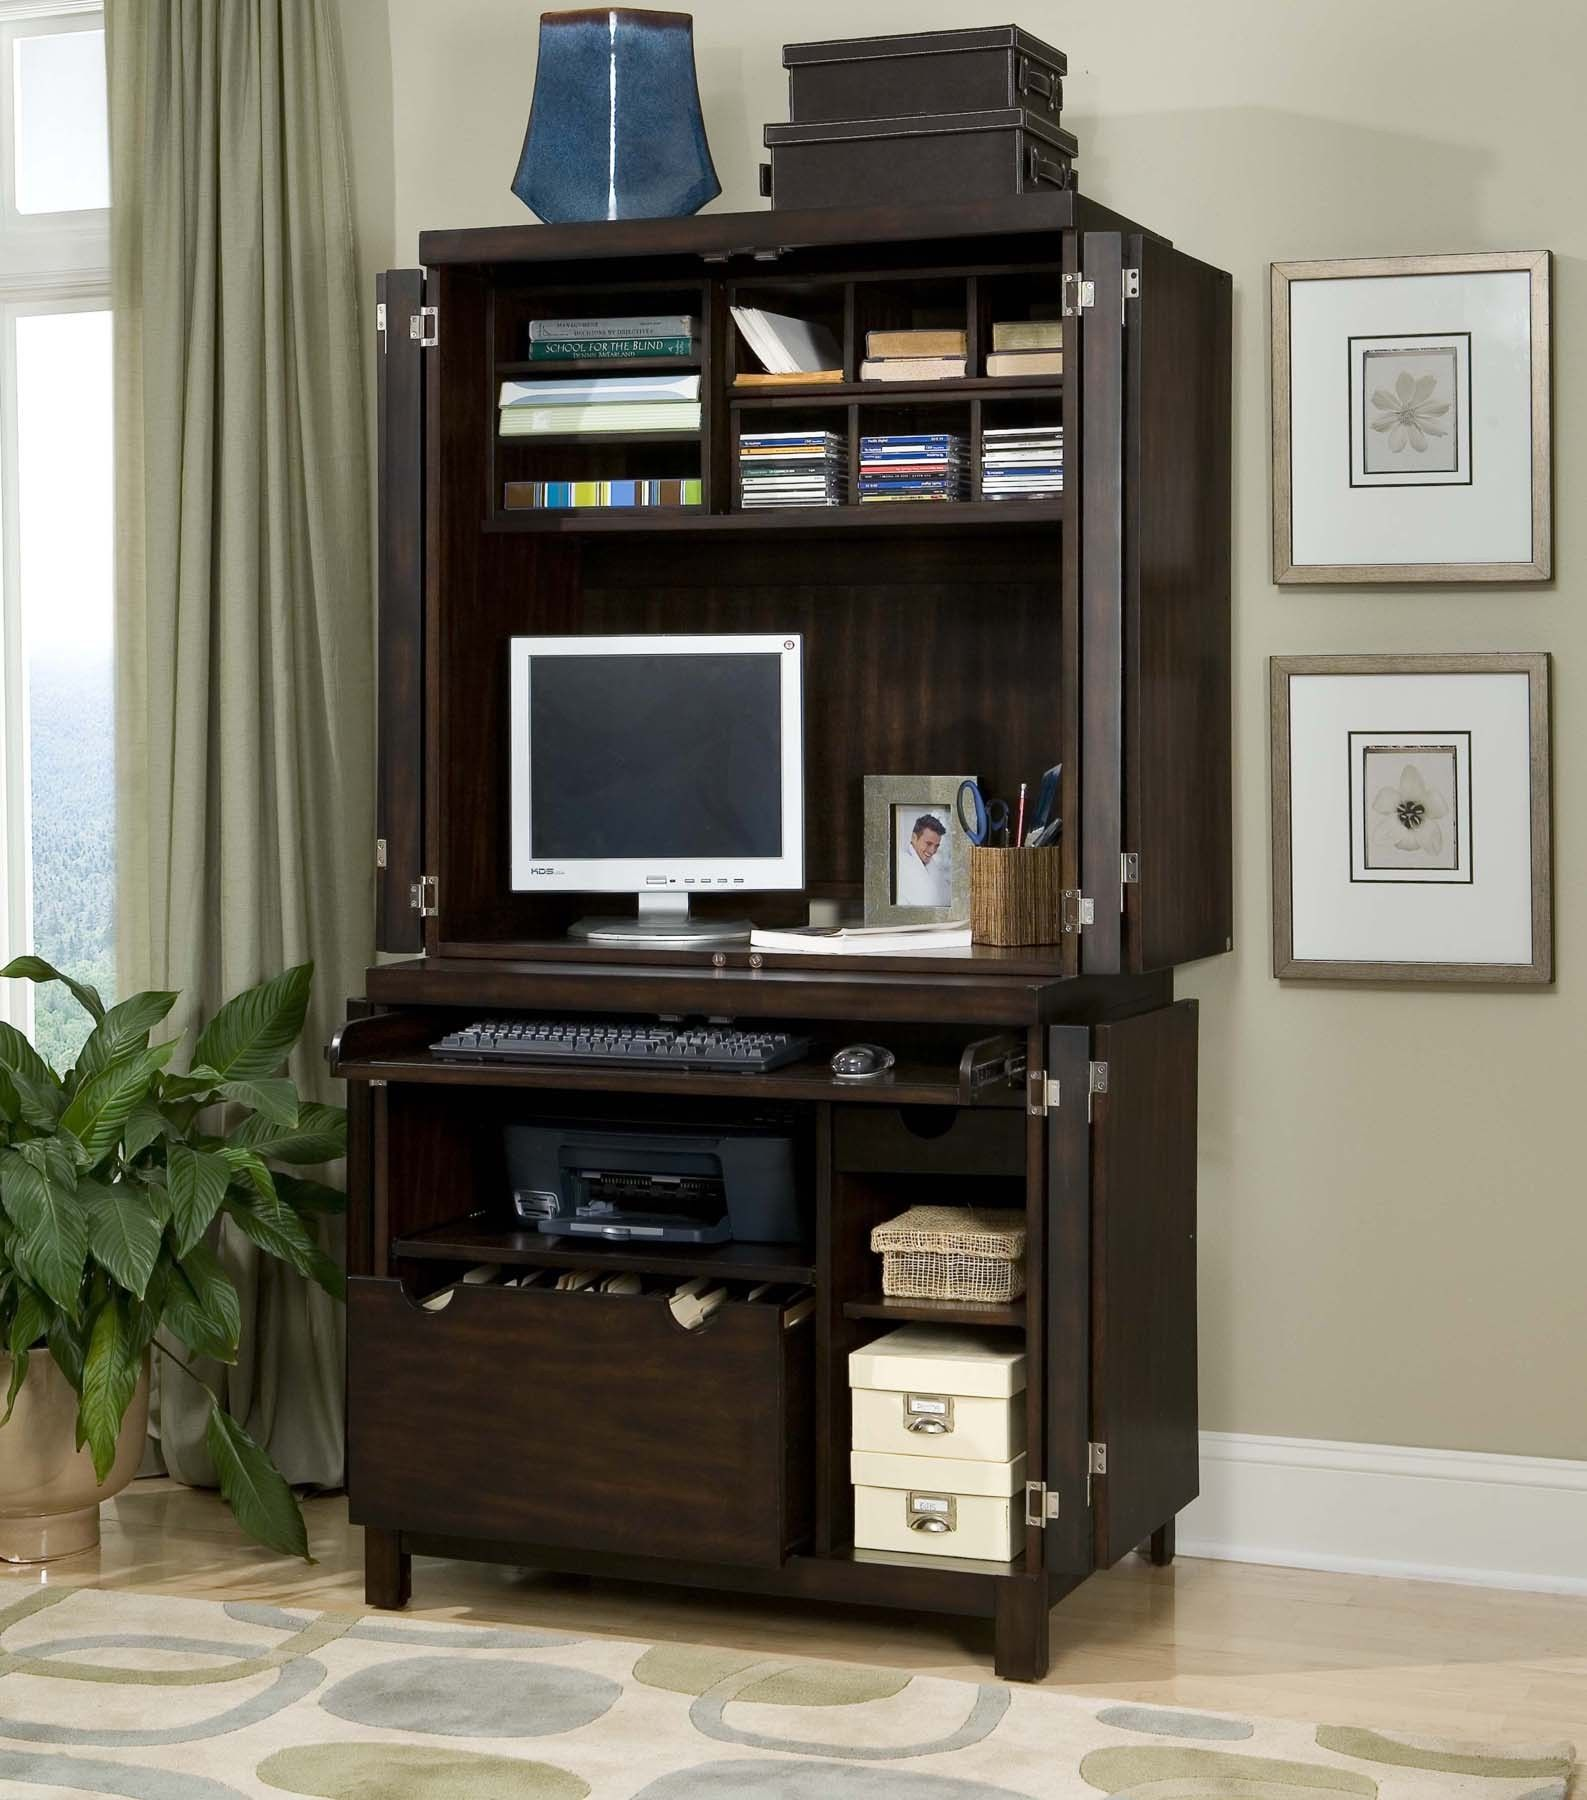 Home styles 5536 190 city chic espresso compact computer desk hutch home - Computer armoires for small spaces property ...